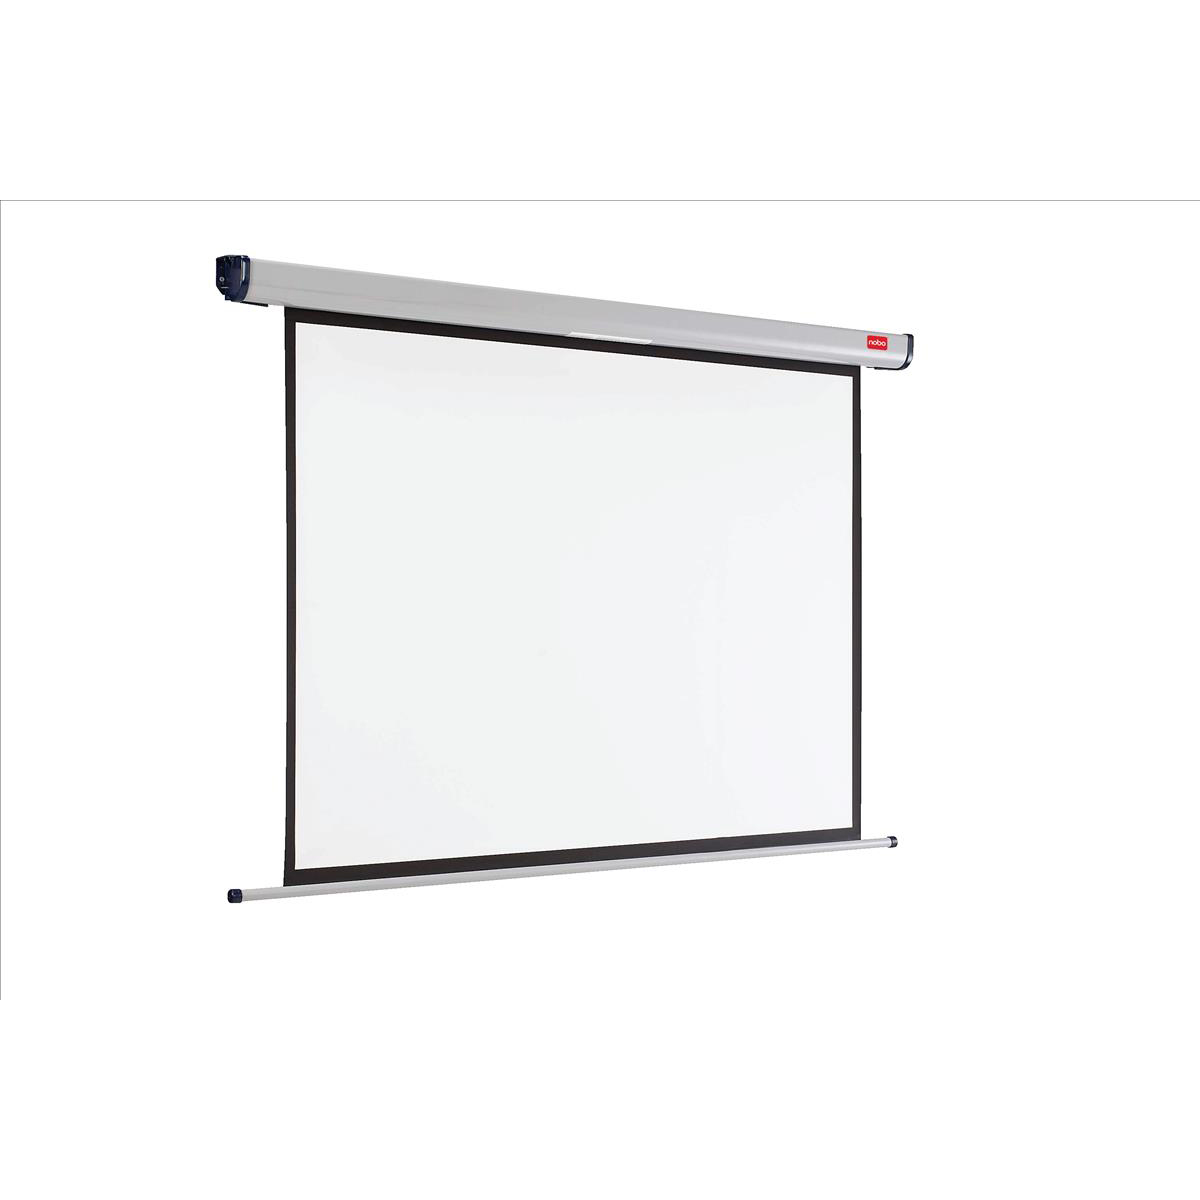 Projection screens Nobo Wall Widescreen Projection Screen W2000xH1350mm Ref 1902393W-